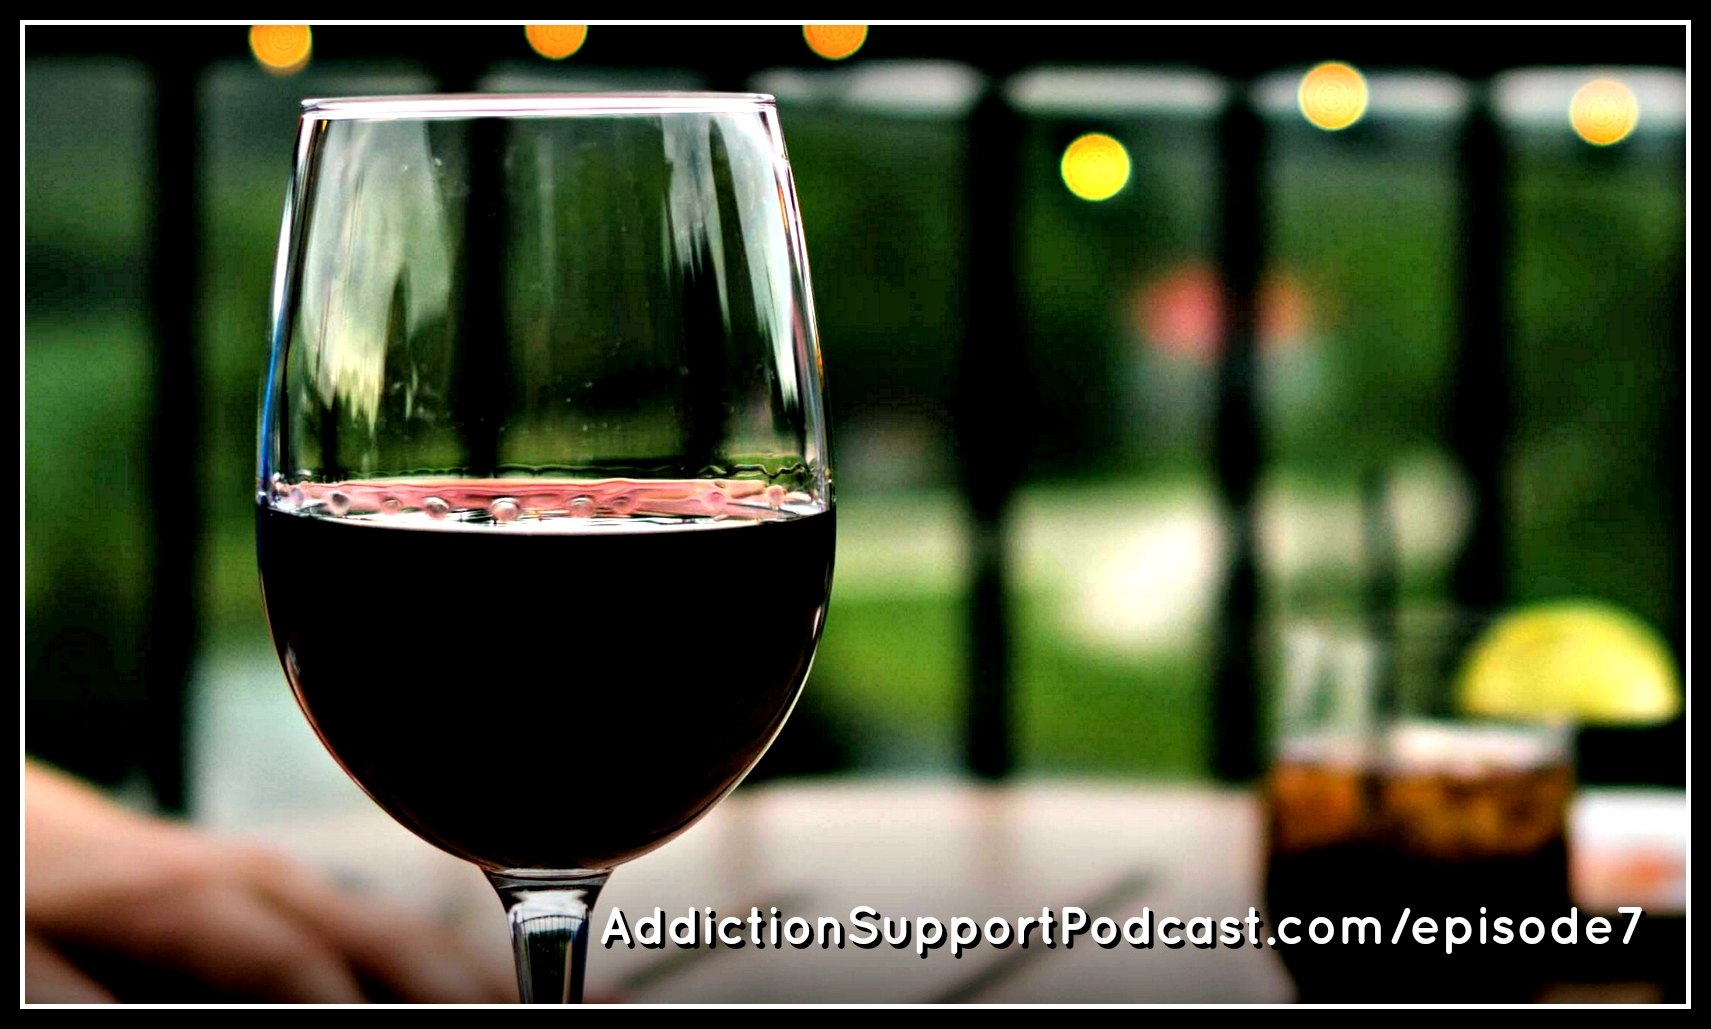 Addiction Support Podcast, Alcohol Addiction Support and Story